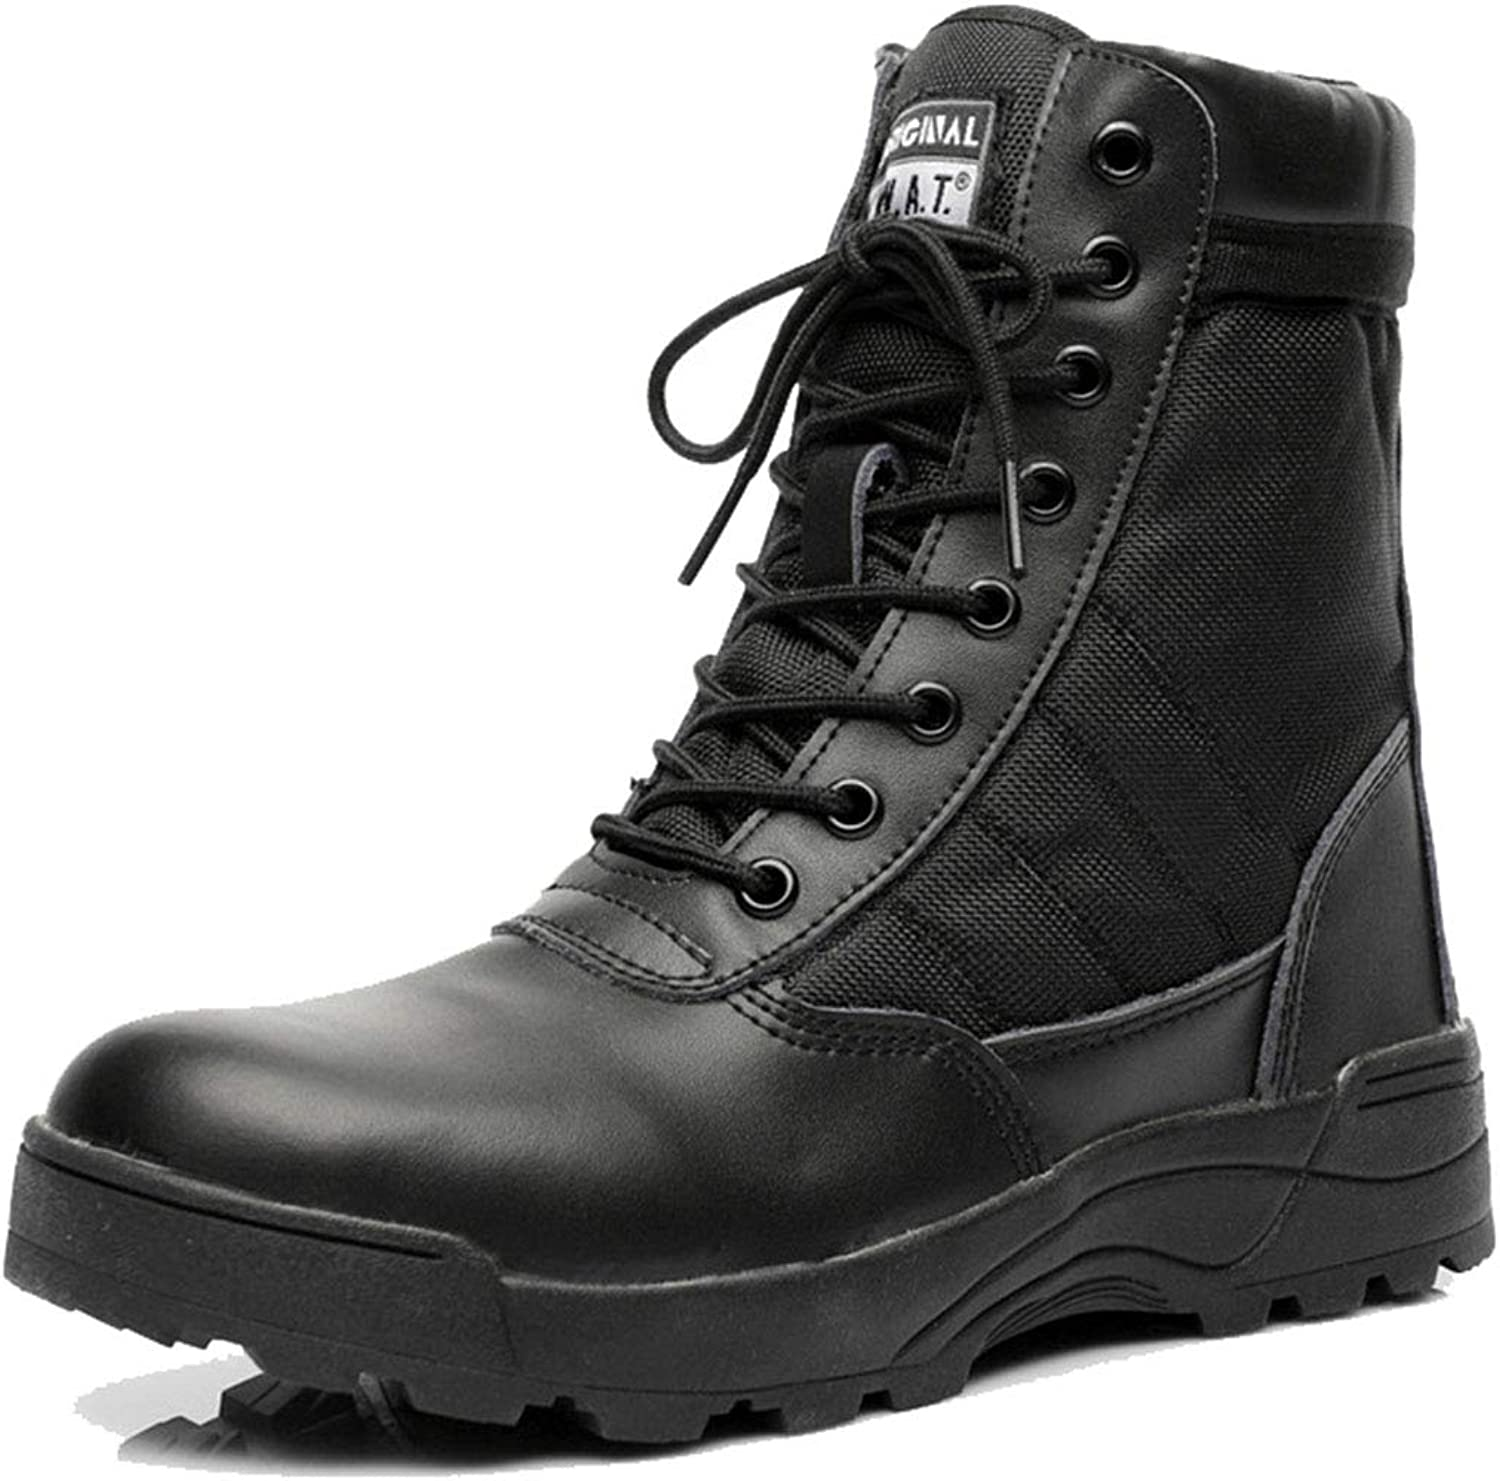 Men Desert Army Combat Boots Lace Up High Top Military Jungle Hiking Patrol Boot Outdoor Camping Armed Tactical shoes